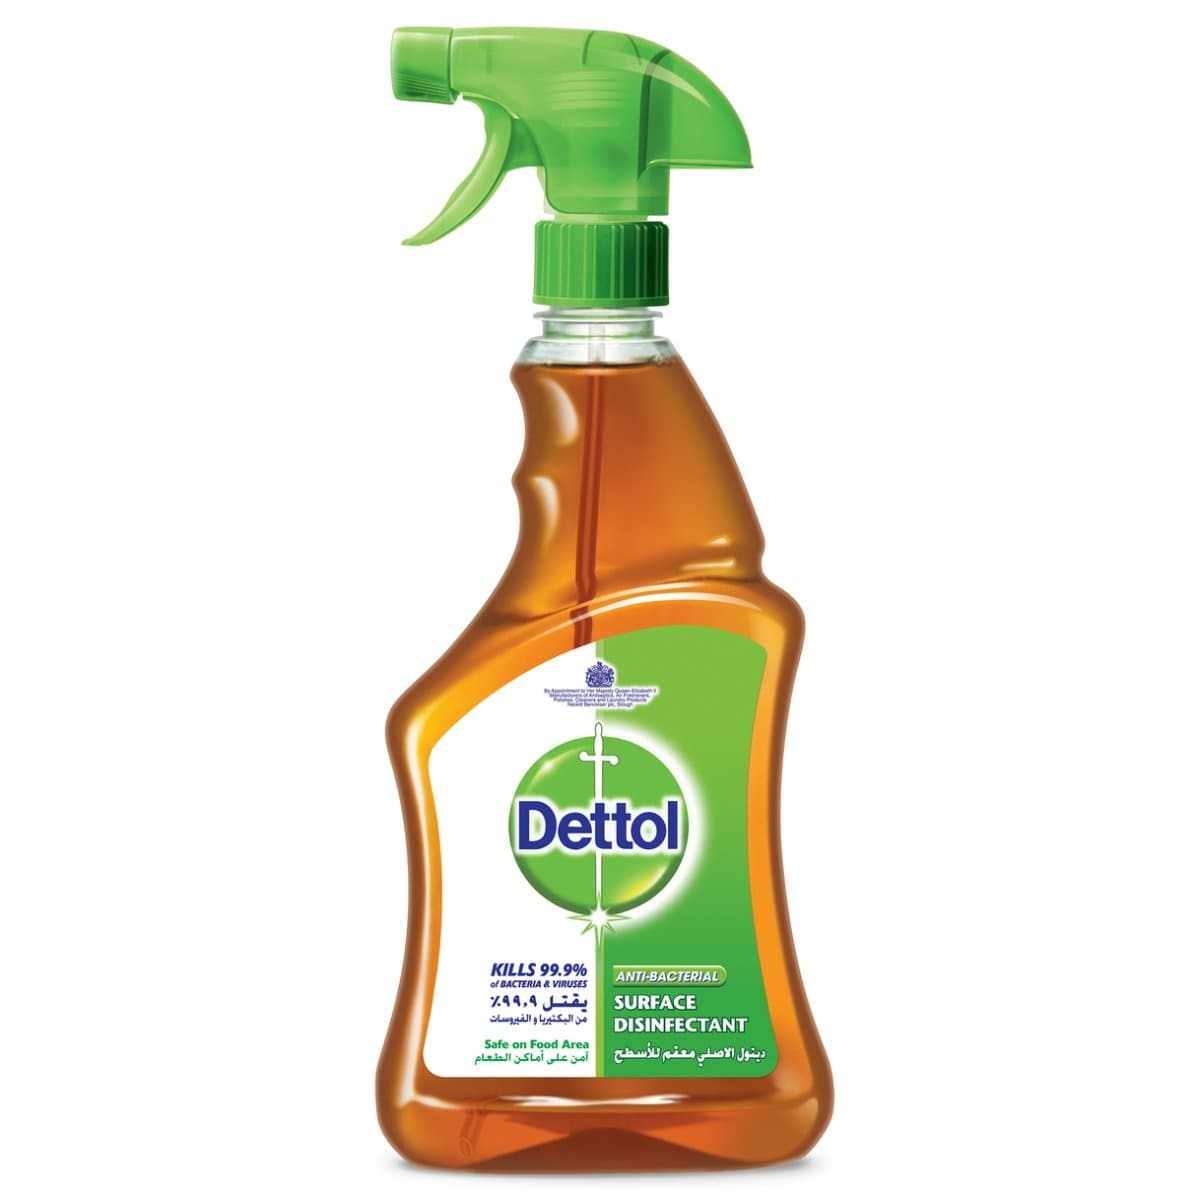 Dettol Surface Disinfectant Anti-Bacterial 500ml